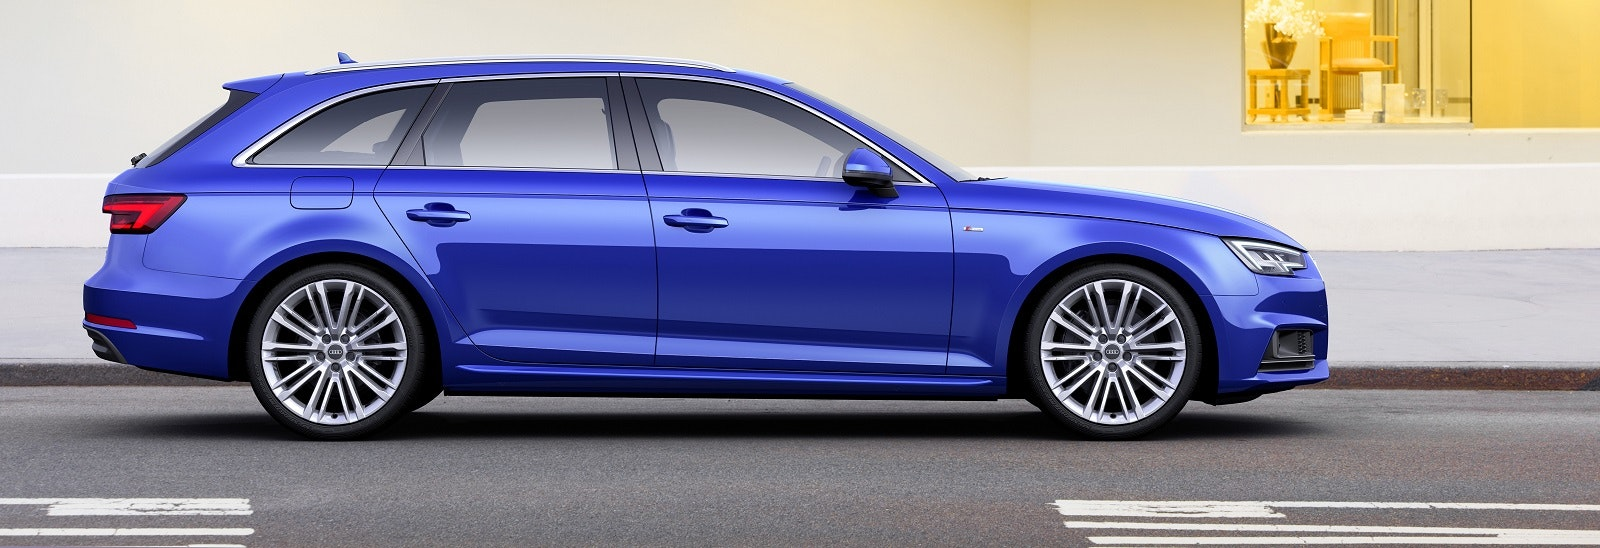 Blue Audi A4 Avant estate